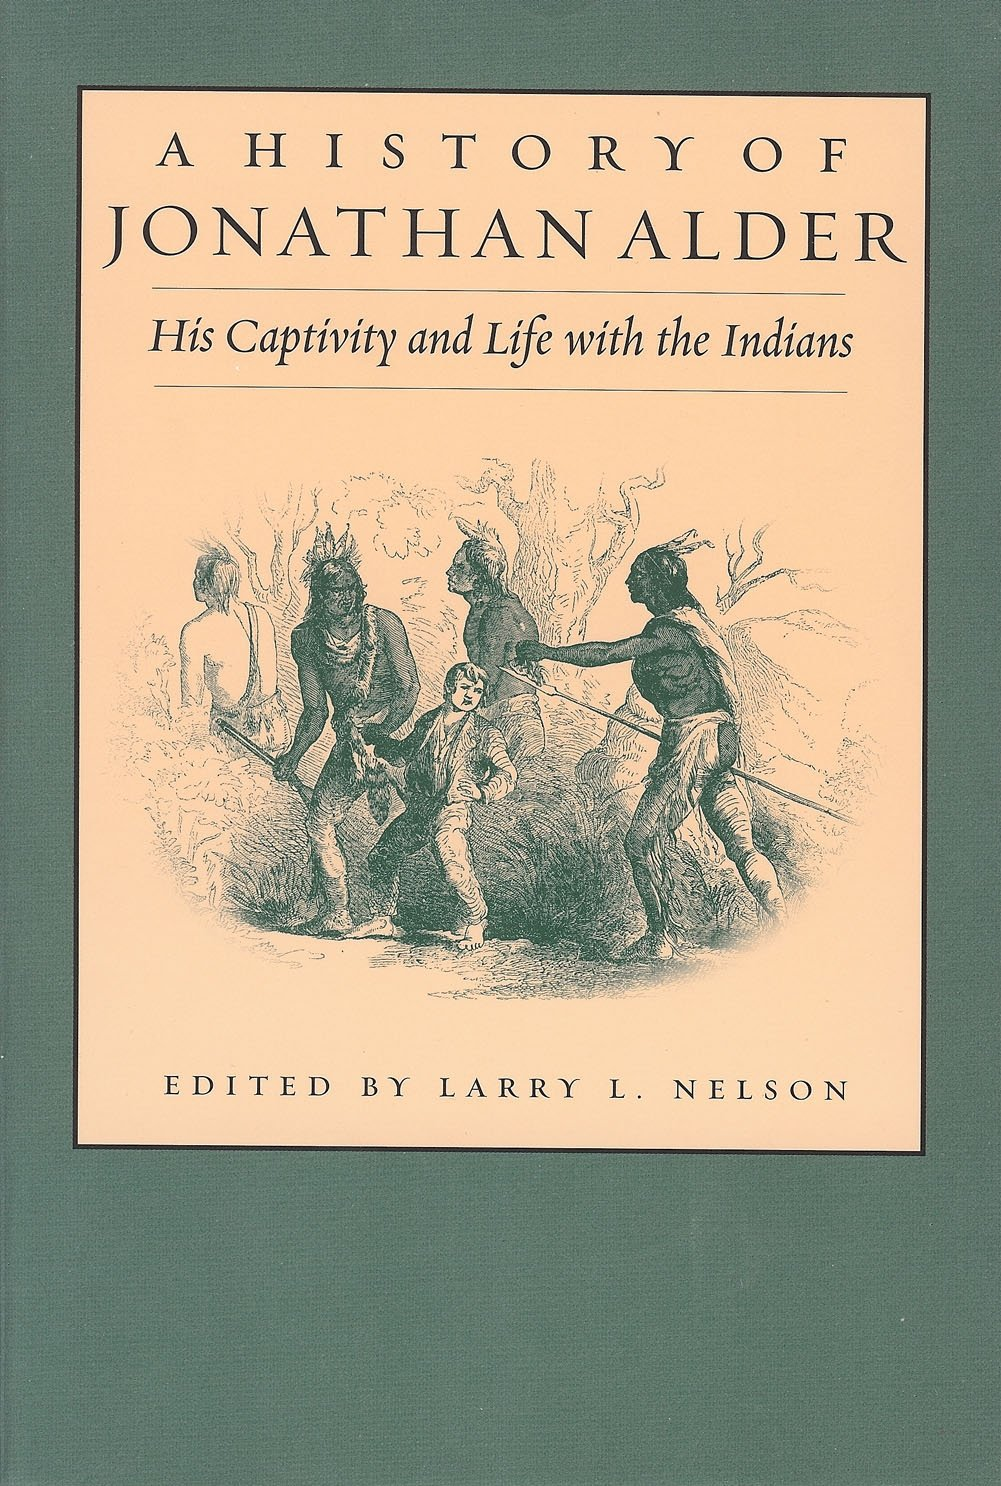 History of Jonathan Alder: His Captivity and Life with the Indians (Ohio  History and Culture (Paperback)): Larry Nelson: 9781884836985: Amazon.com:  Books